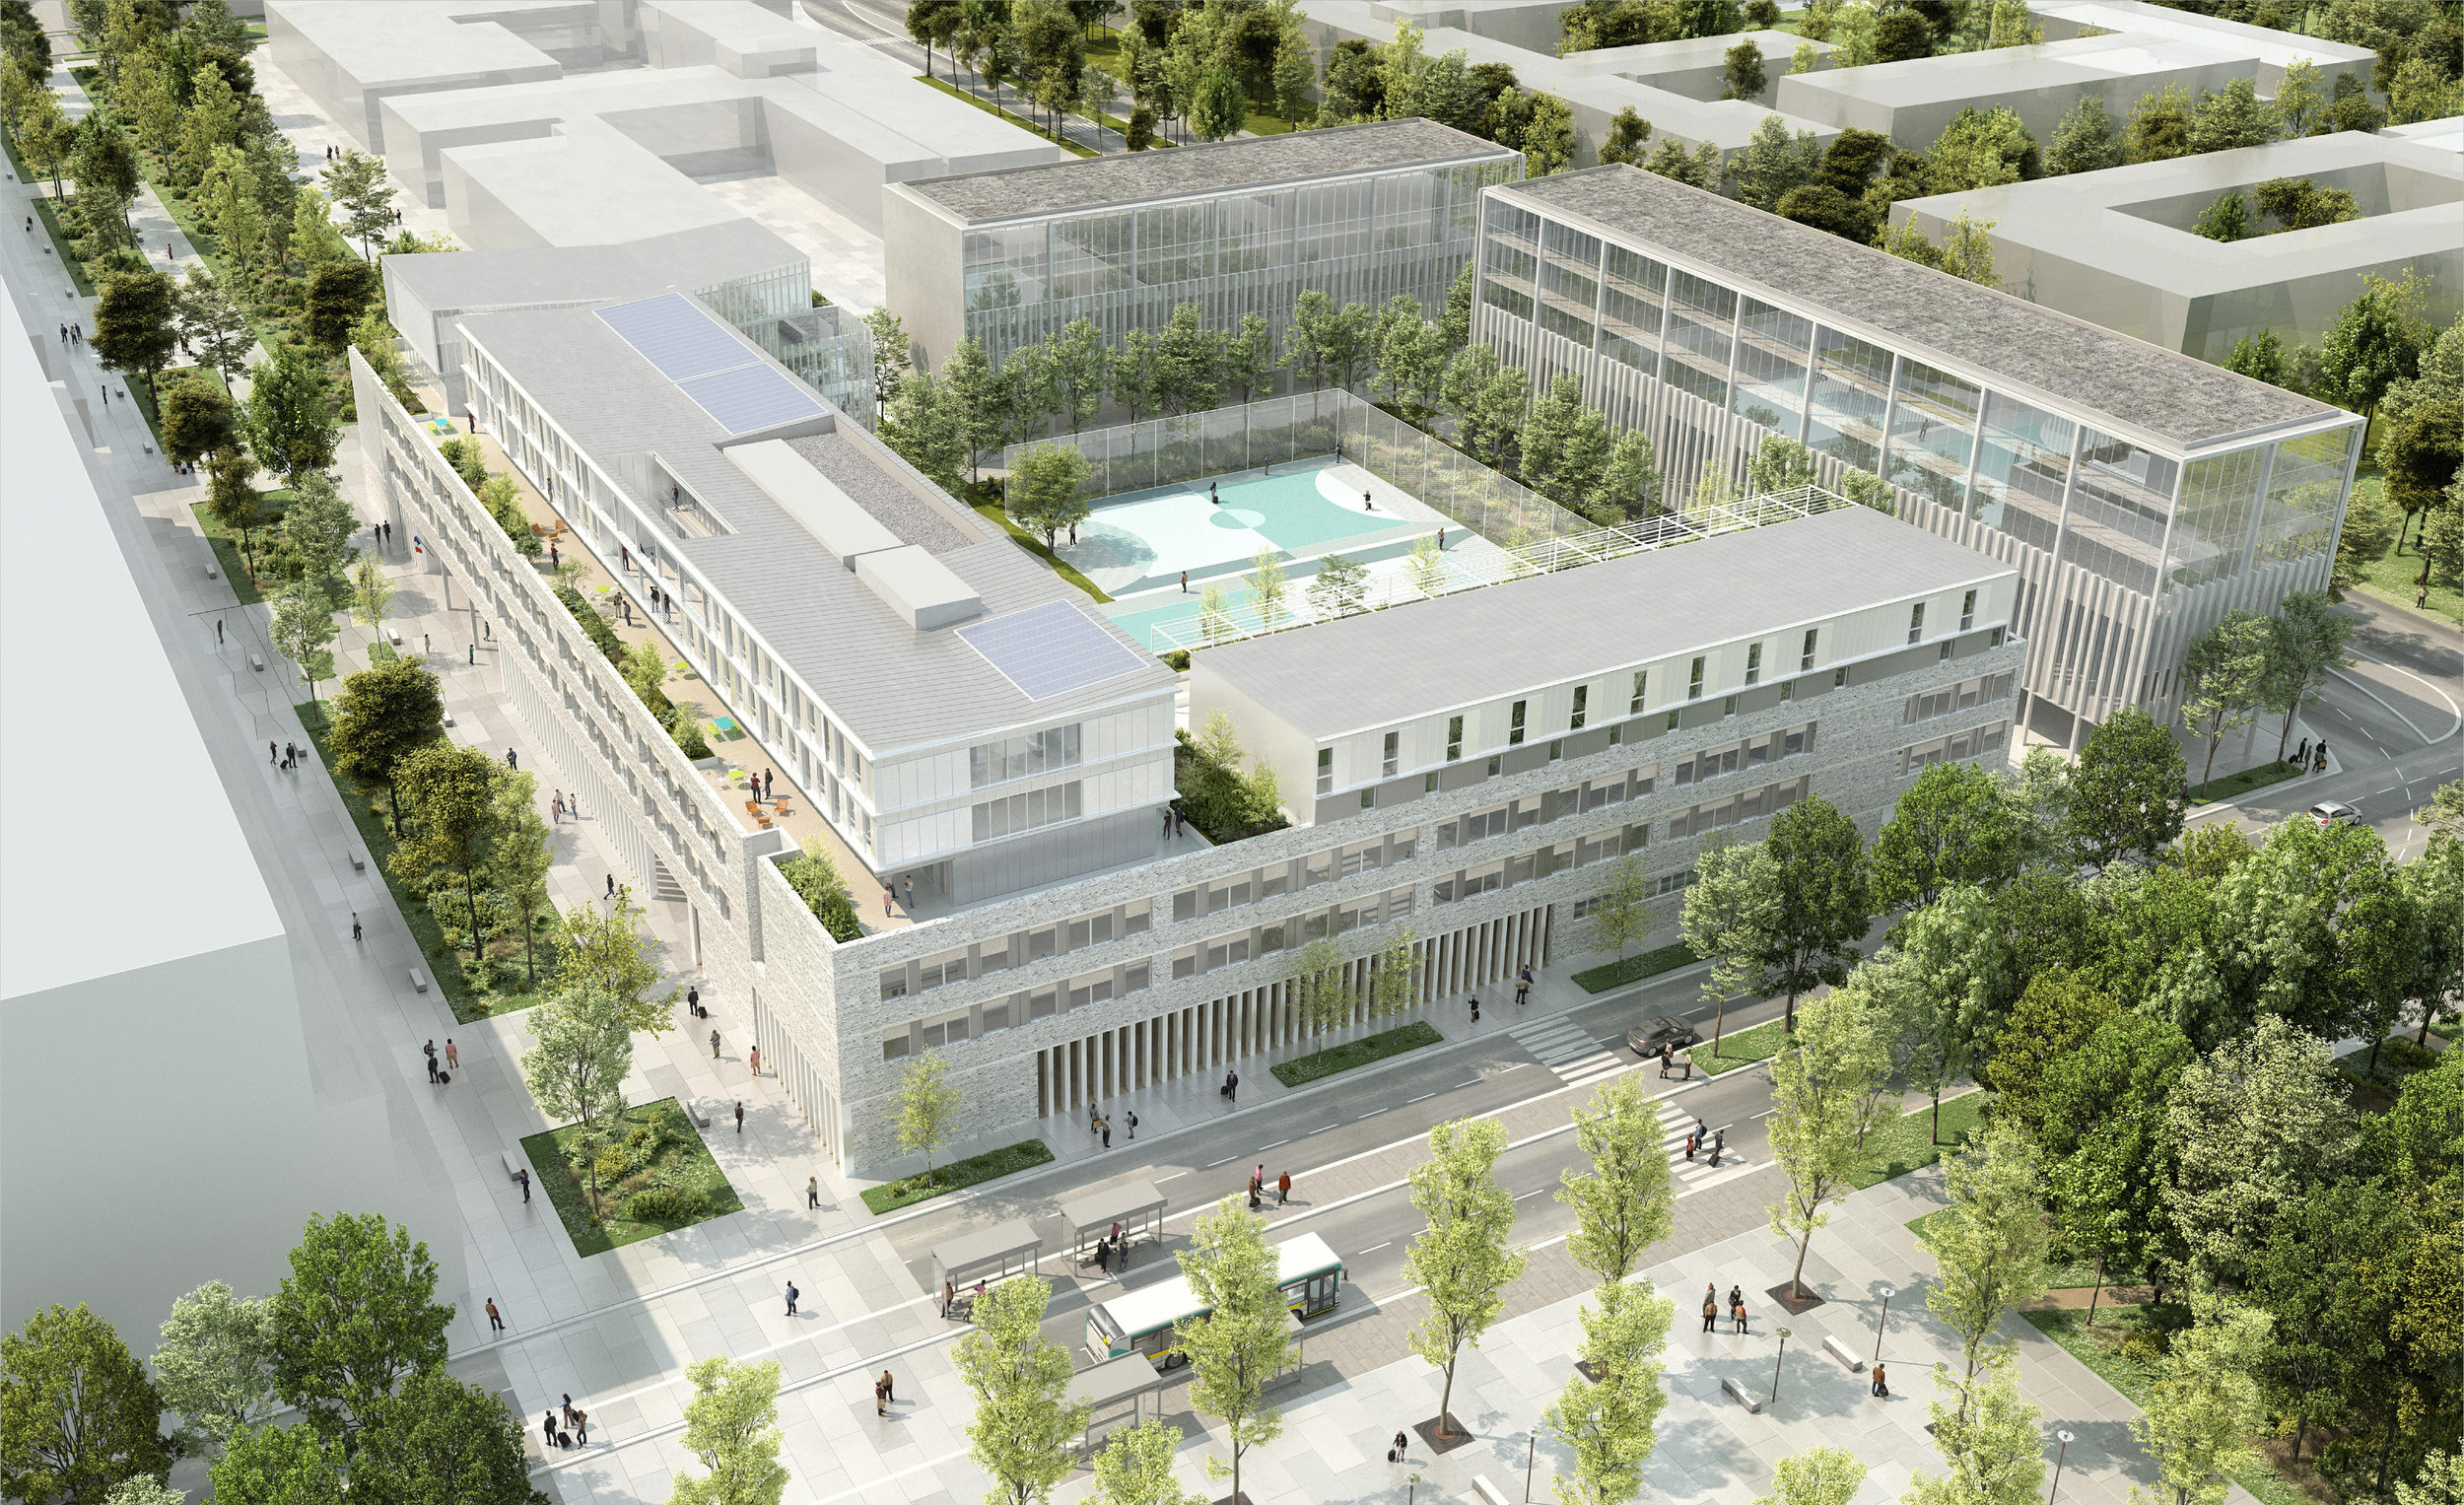 High School / Palaiseau (91)   The major design issues of the future Palaiseau High School lie in the good match between the strong urban planning requirements and the respect of the programmatic data essential for the establishment's proper functioning.